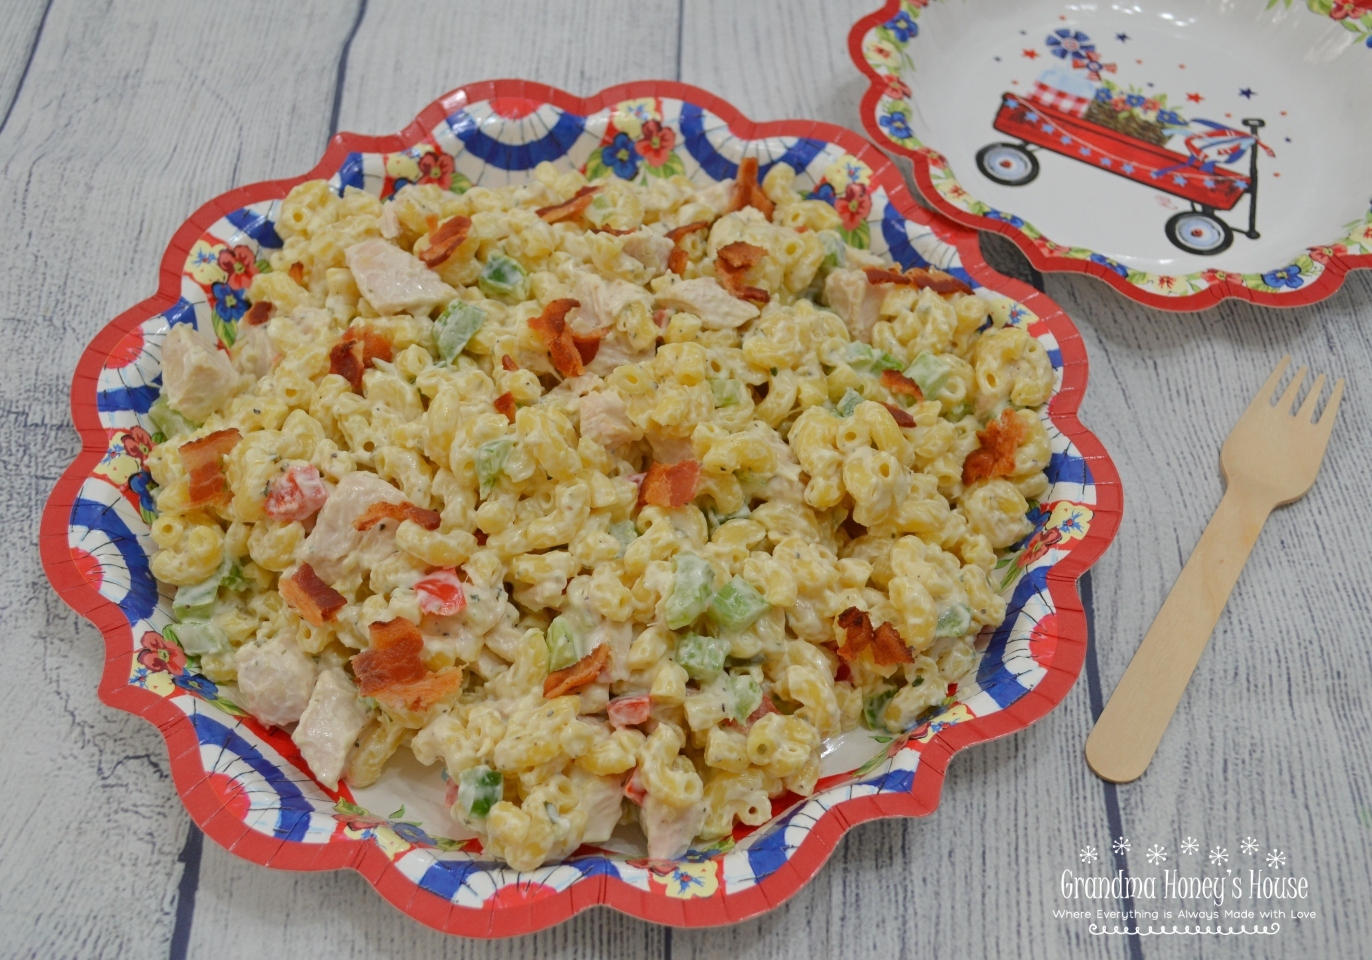 Chicken Bacon Ranch Macaroni Salad. Loaded macaroni salad with pasta, rotisserie chicken, bell peppers, and bacon, all combined with a creamy mayonnaise and ranch dressing mixture